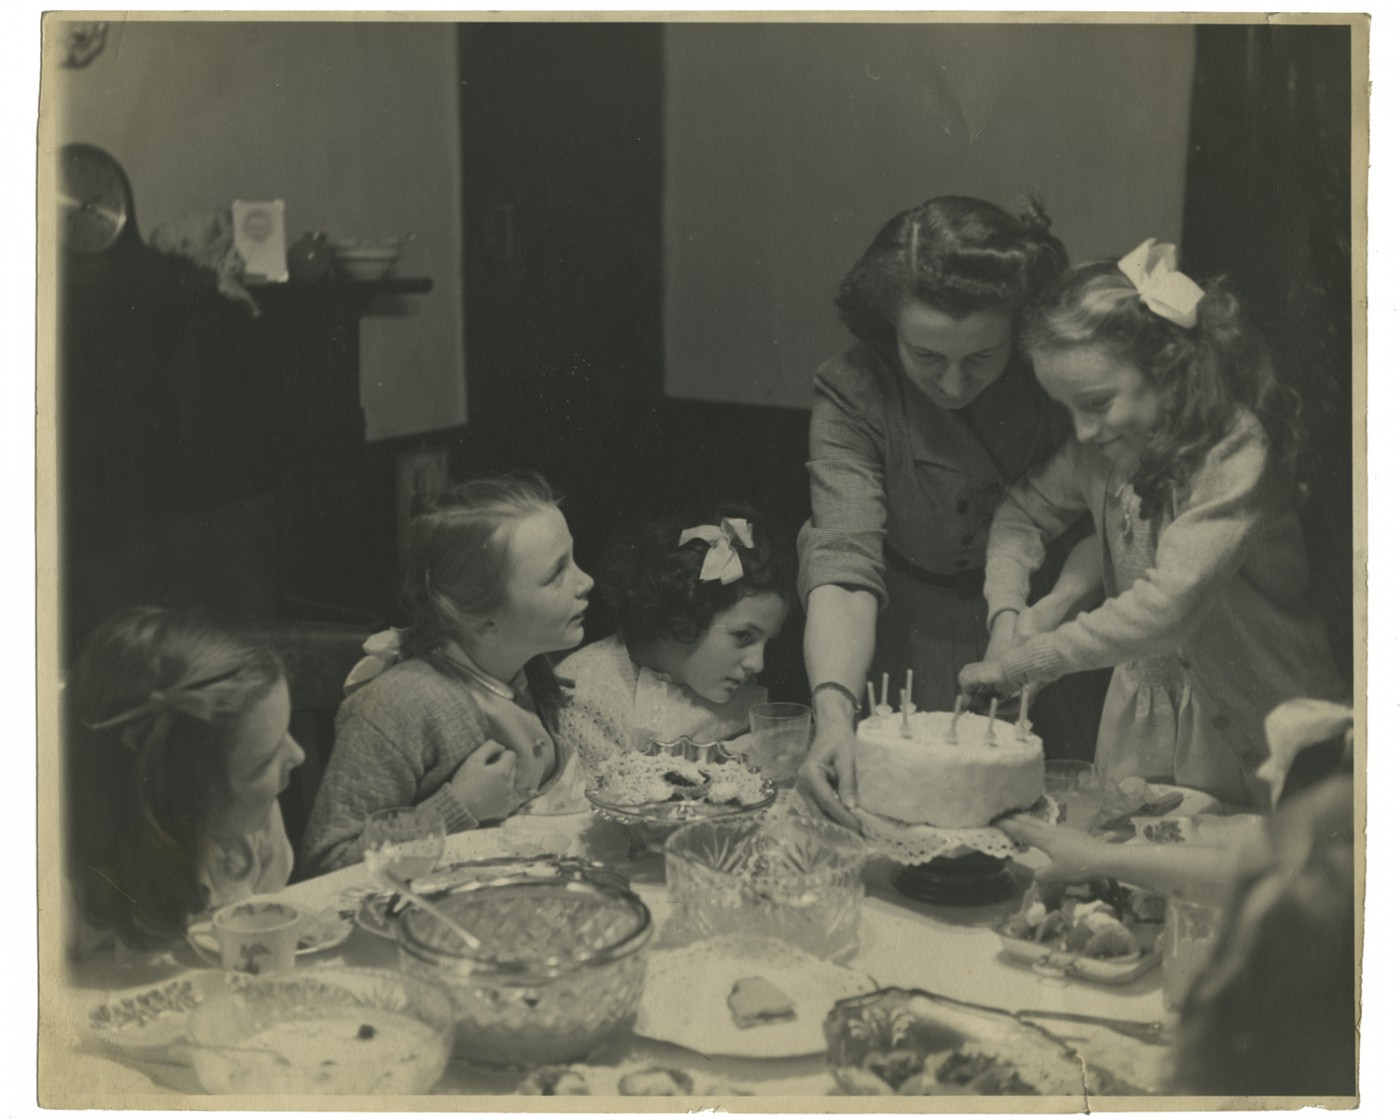 "Derry Martin, </span><span><em>Felicity cutting her cake with her mother Kitty and friends on her 8th birthday, England</em>, </span><span>April 1948. Gelatin silver print, 7.5 x 9.25"". Courtesy of Somerset Family."